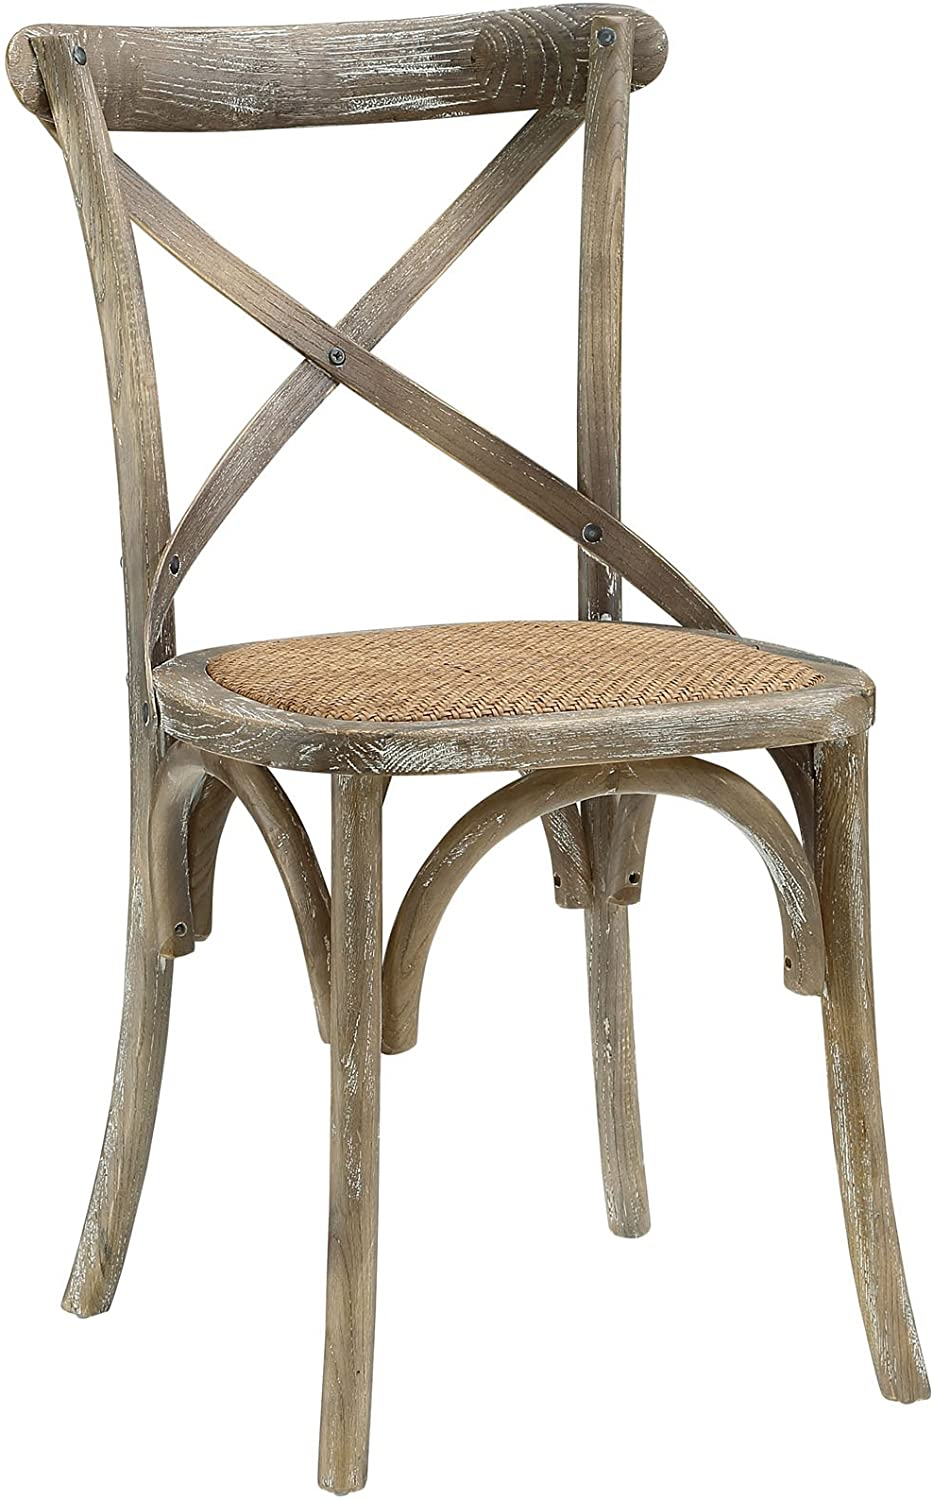 Modway Gear Rustic Farmhouse Elm Wood Rattan Kitchen and Dining Room Chair in Gray – Fully Assembled